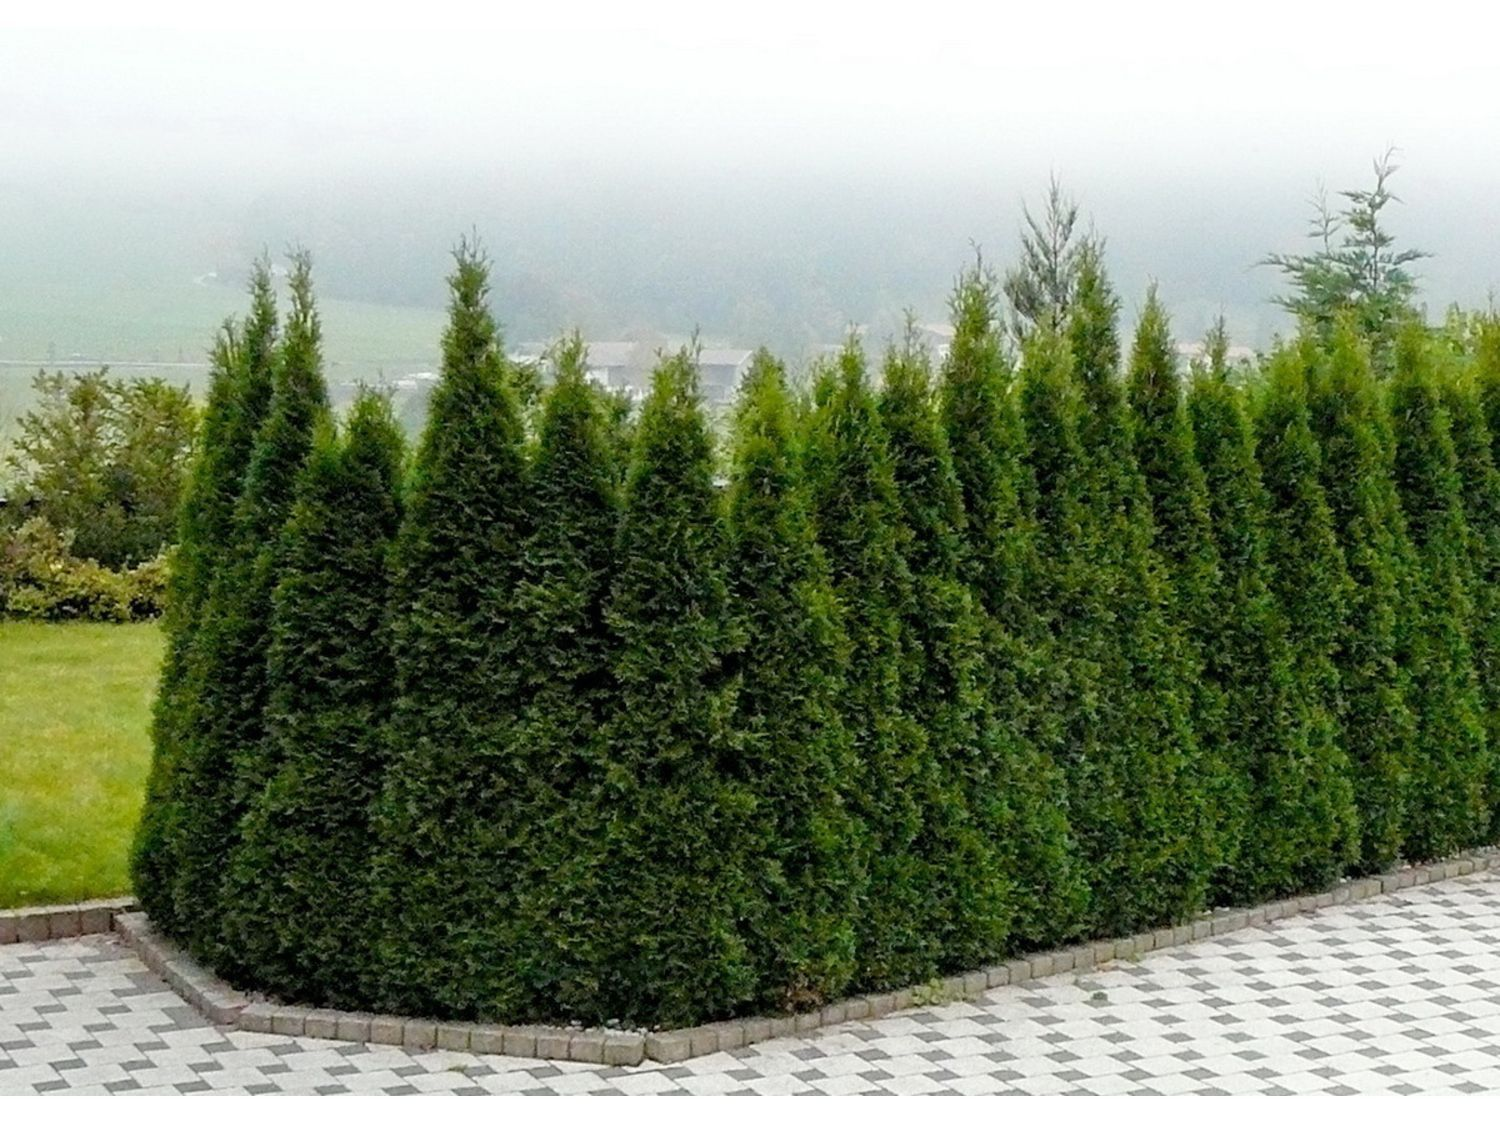 Arborvitae Emerald Green Is A Fast Growing Evergreen That Used As Privacy Screen